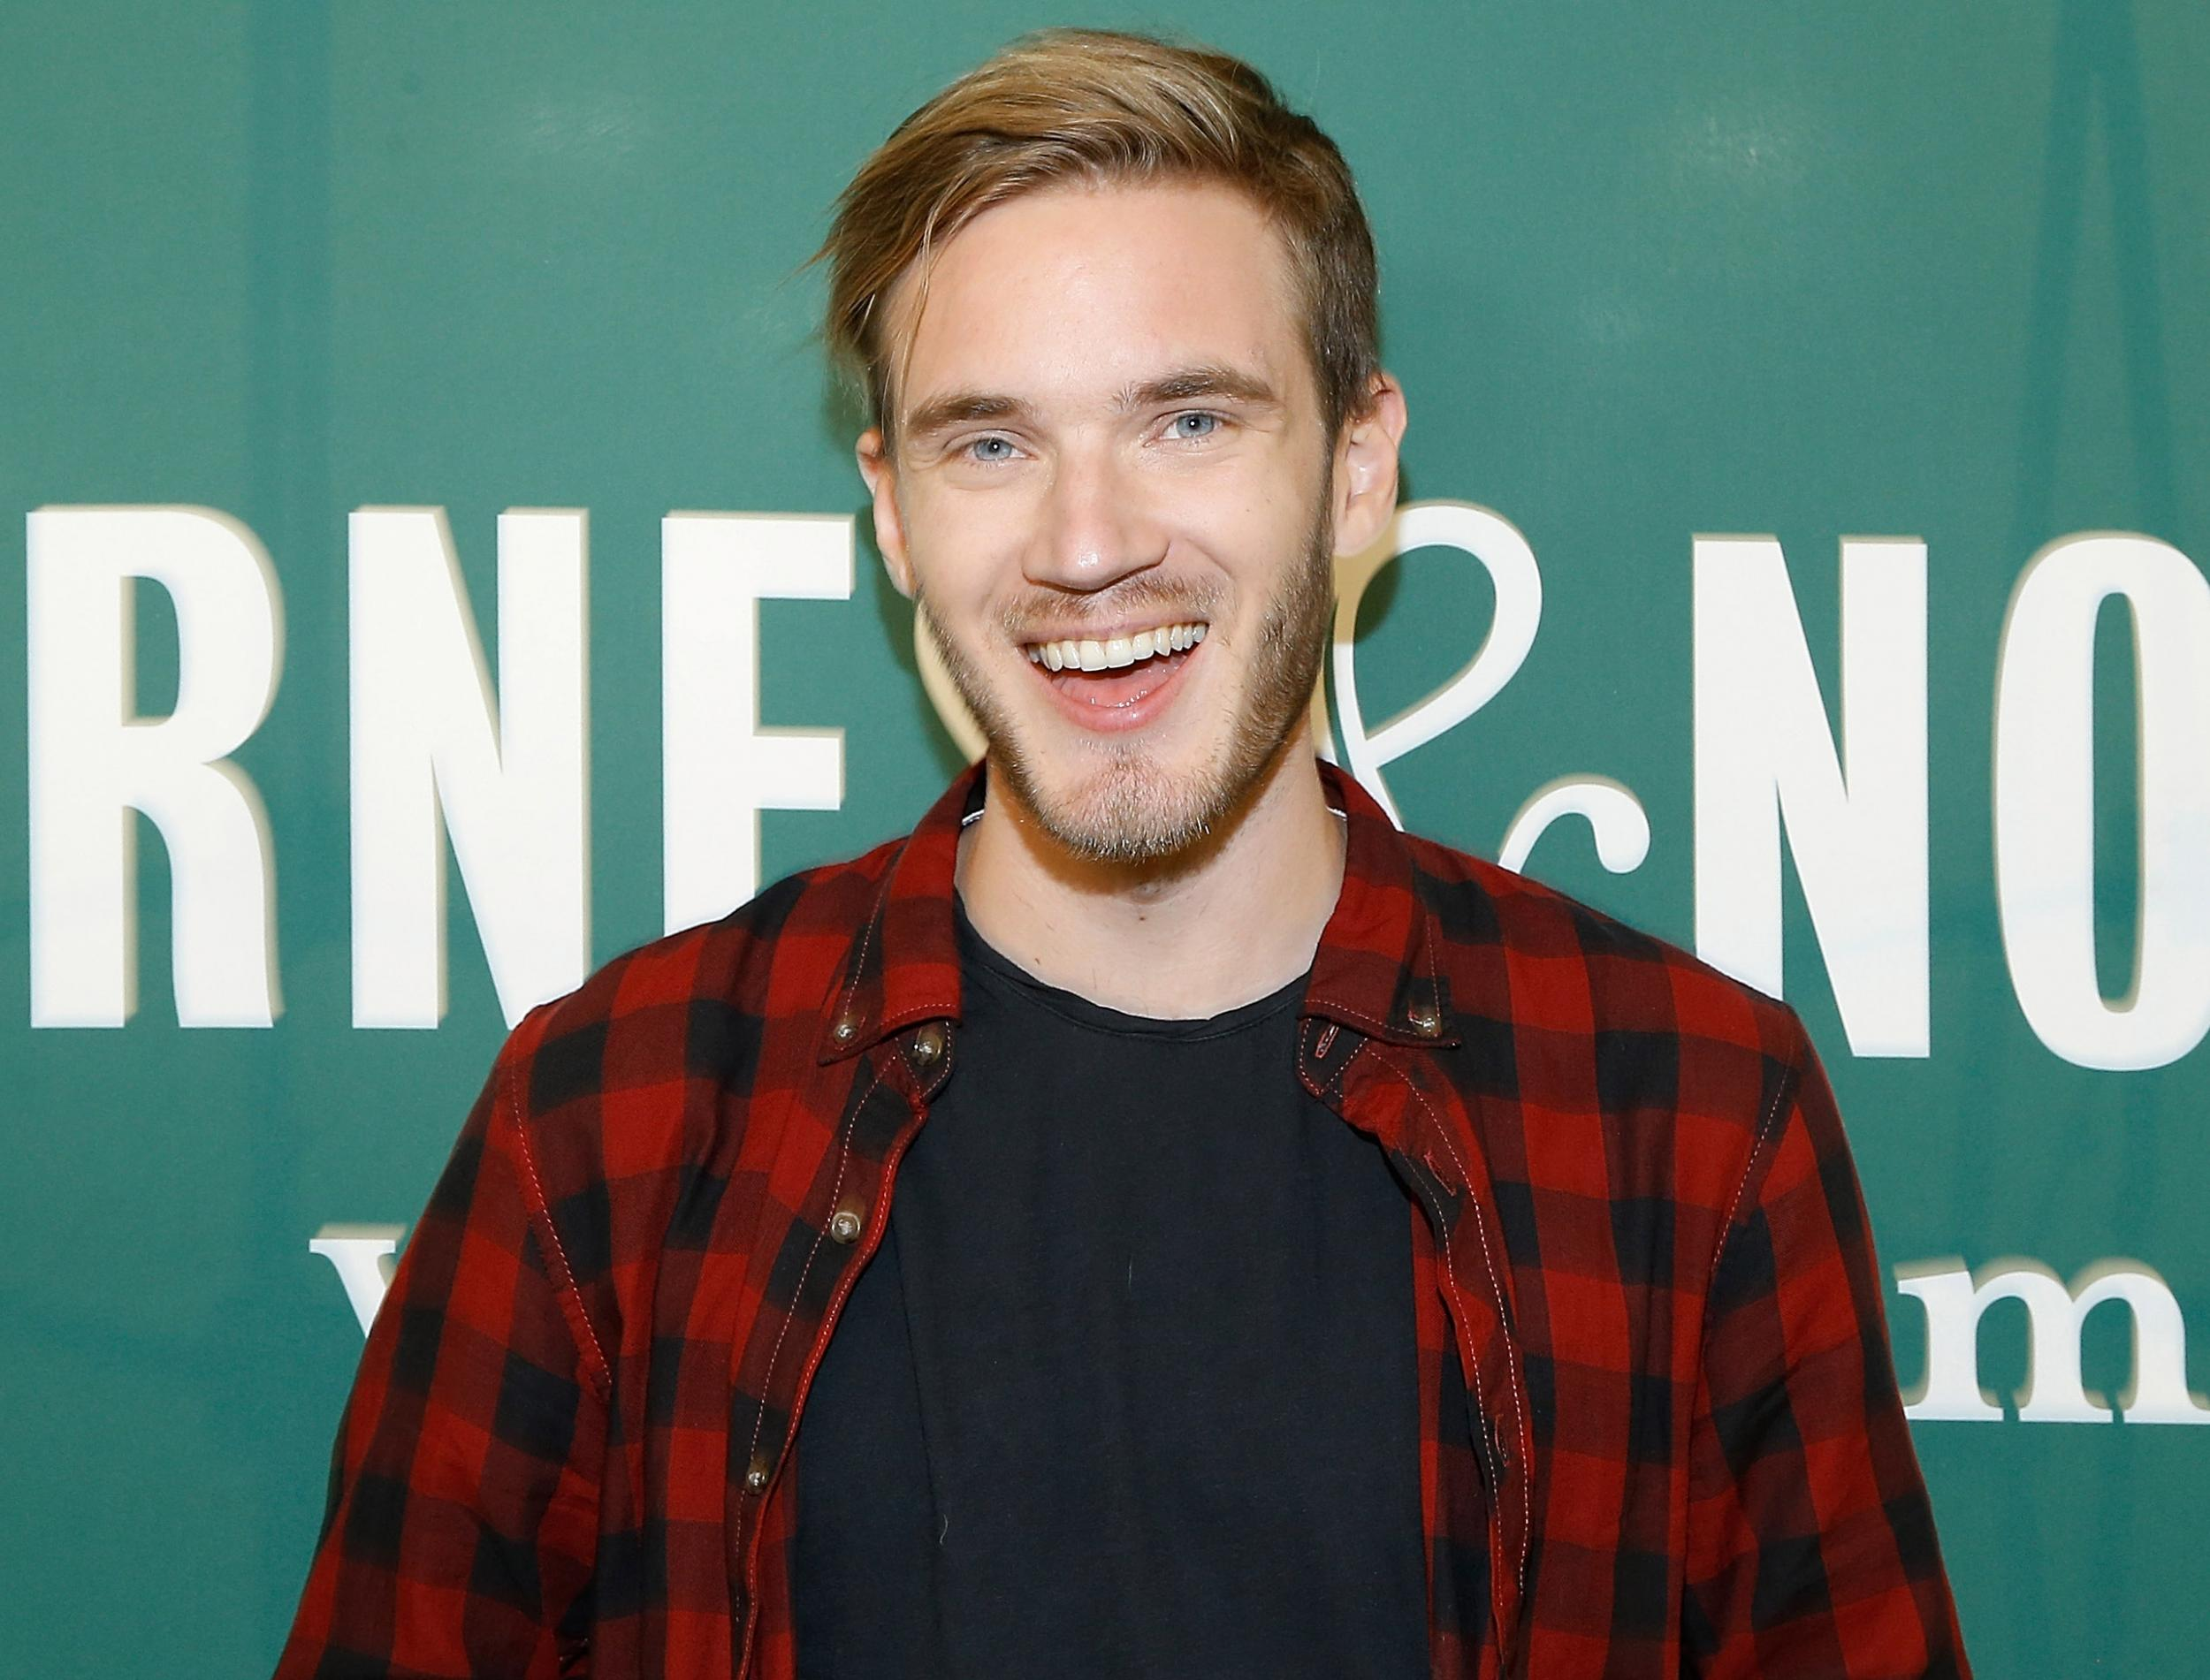 Thumbnail for When did fascism become so cool? PewDiePie's antics are the thin end of the wedge